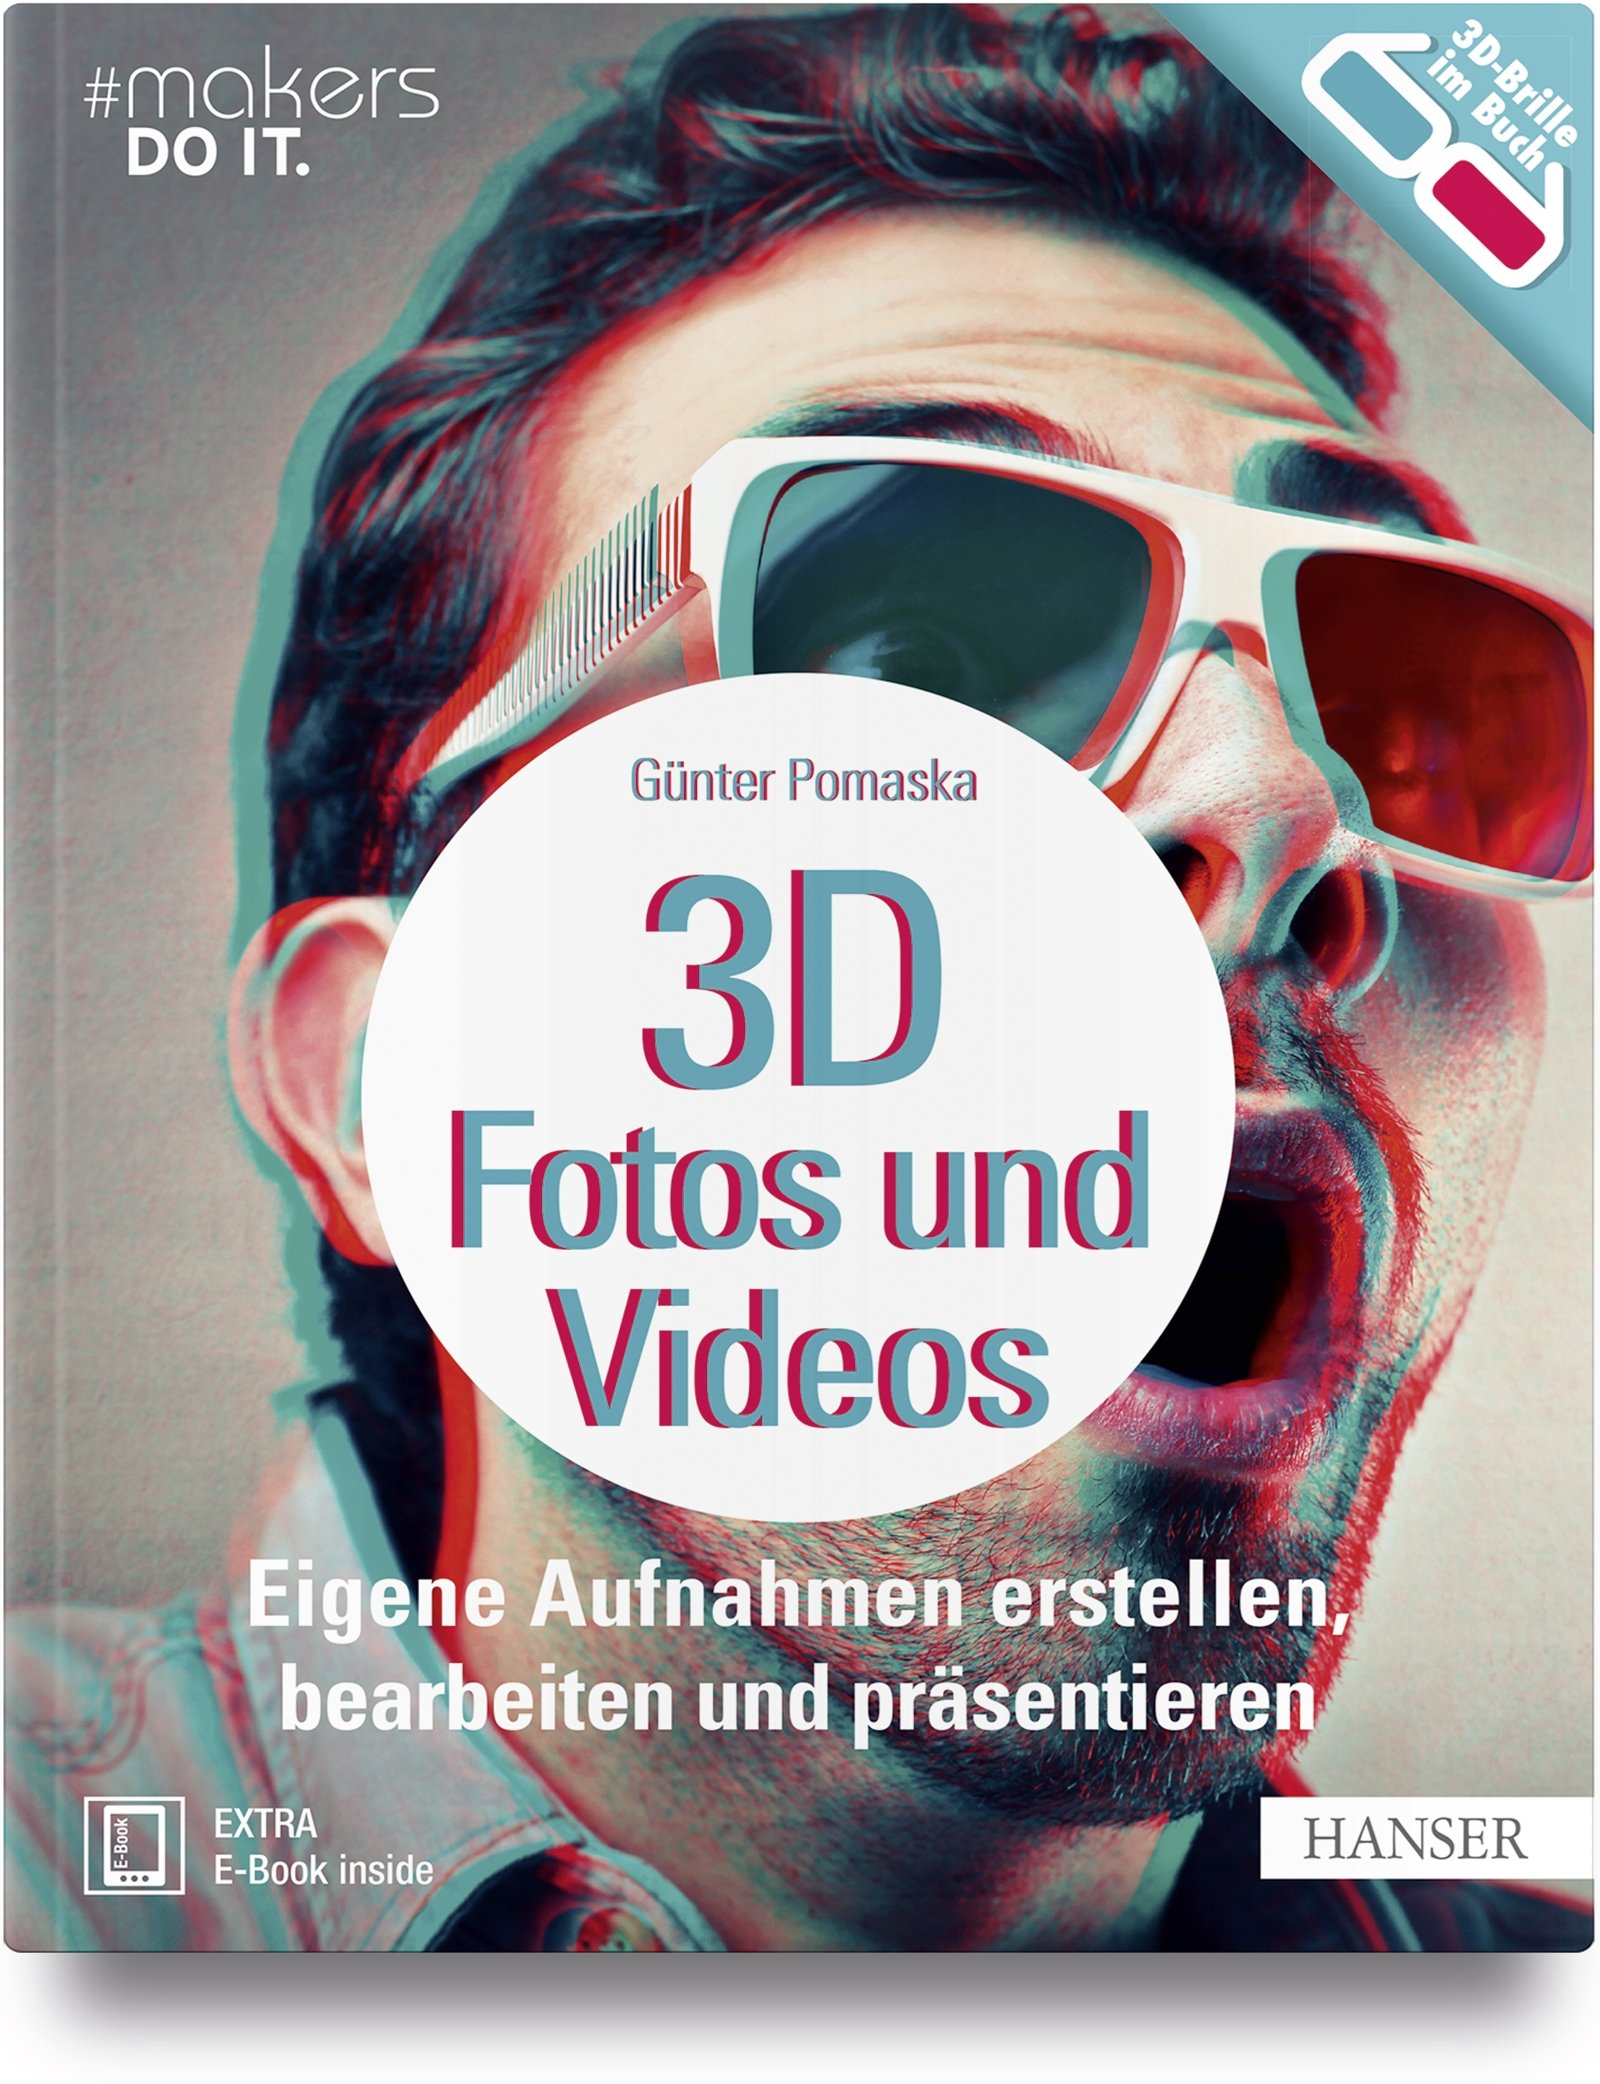 3d-fotos-und-videos-eigene-aufnahmen-erstellen-bearbeiten-und-prsentieren-analog-digital-inkl-360-aufnahmen-virtual-reality-und-raspberry-pi-kamera-makers-do-it